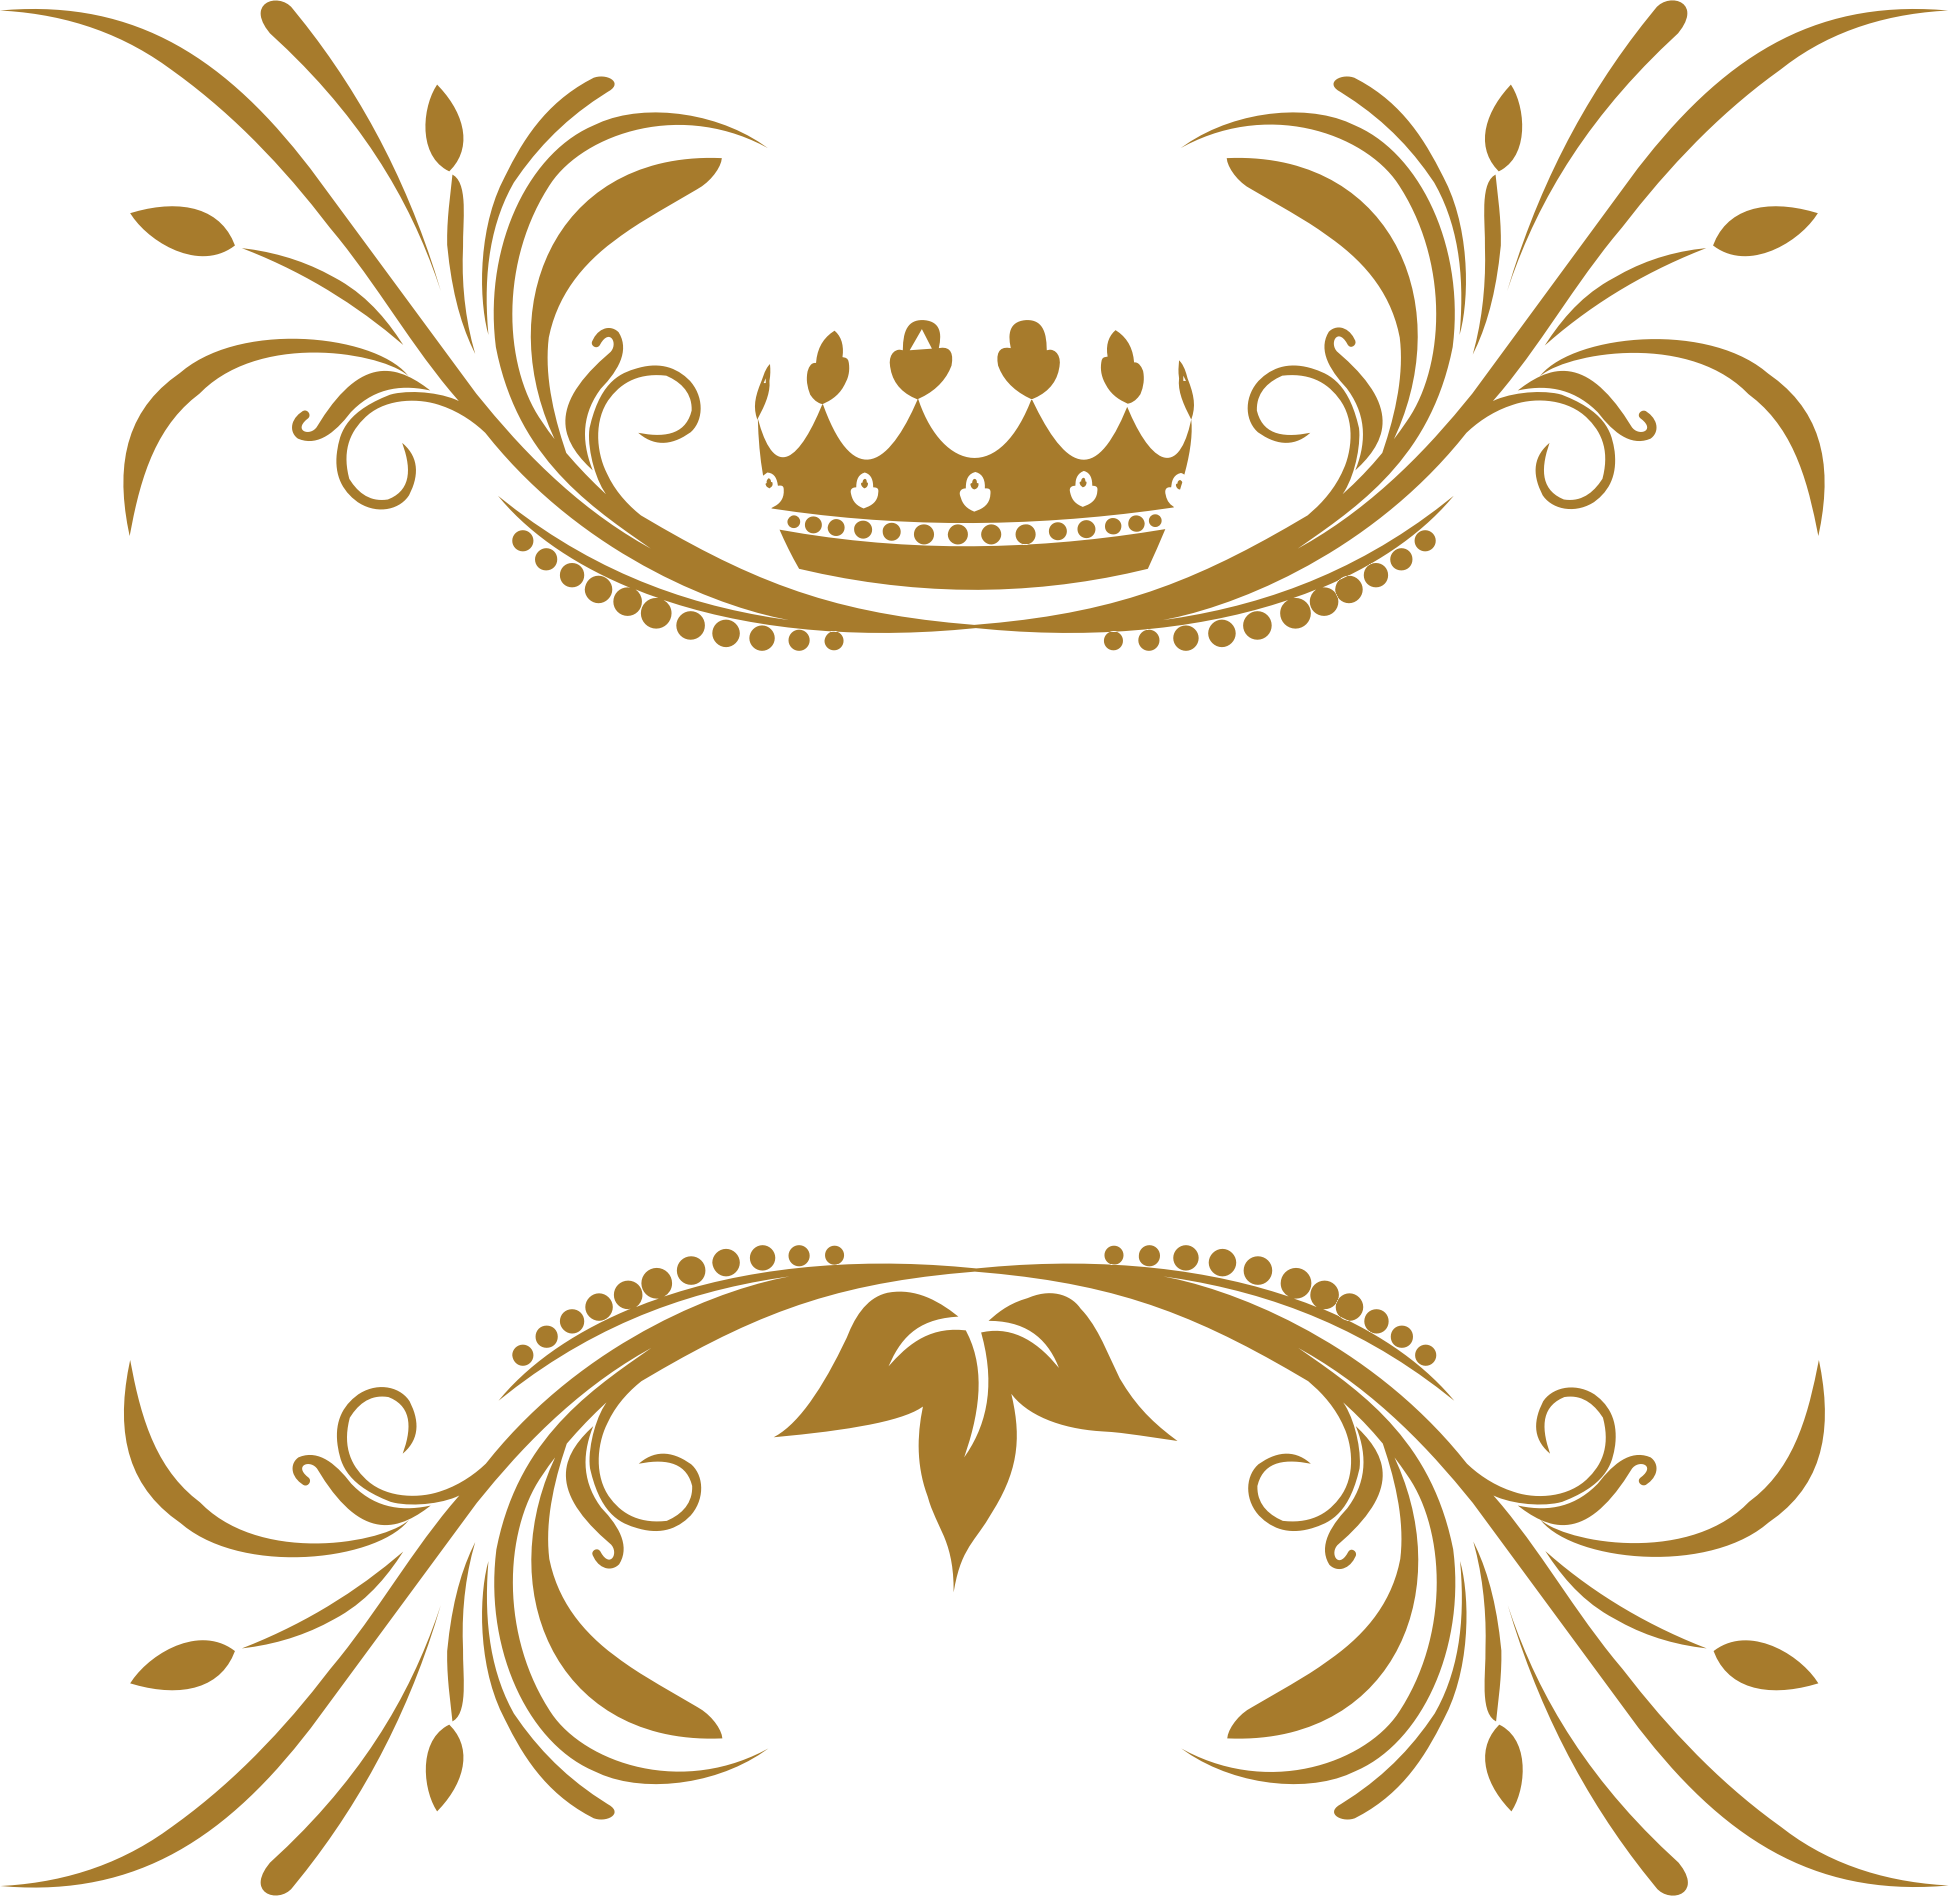 Flourish png transparent. Clipart crown no background